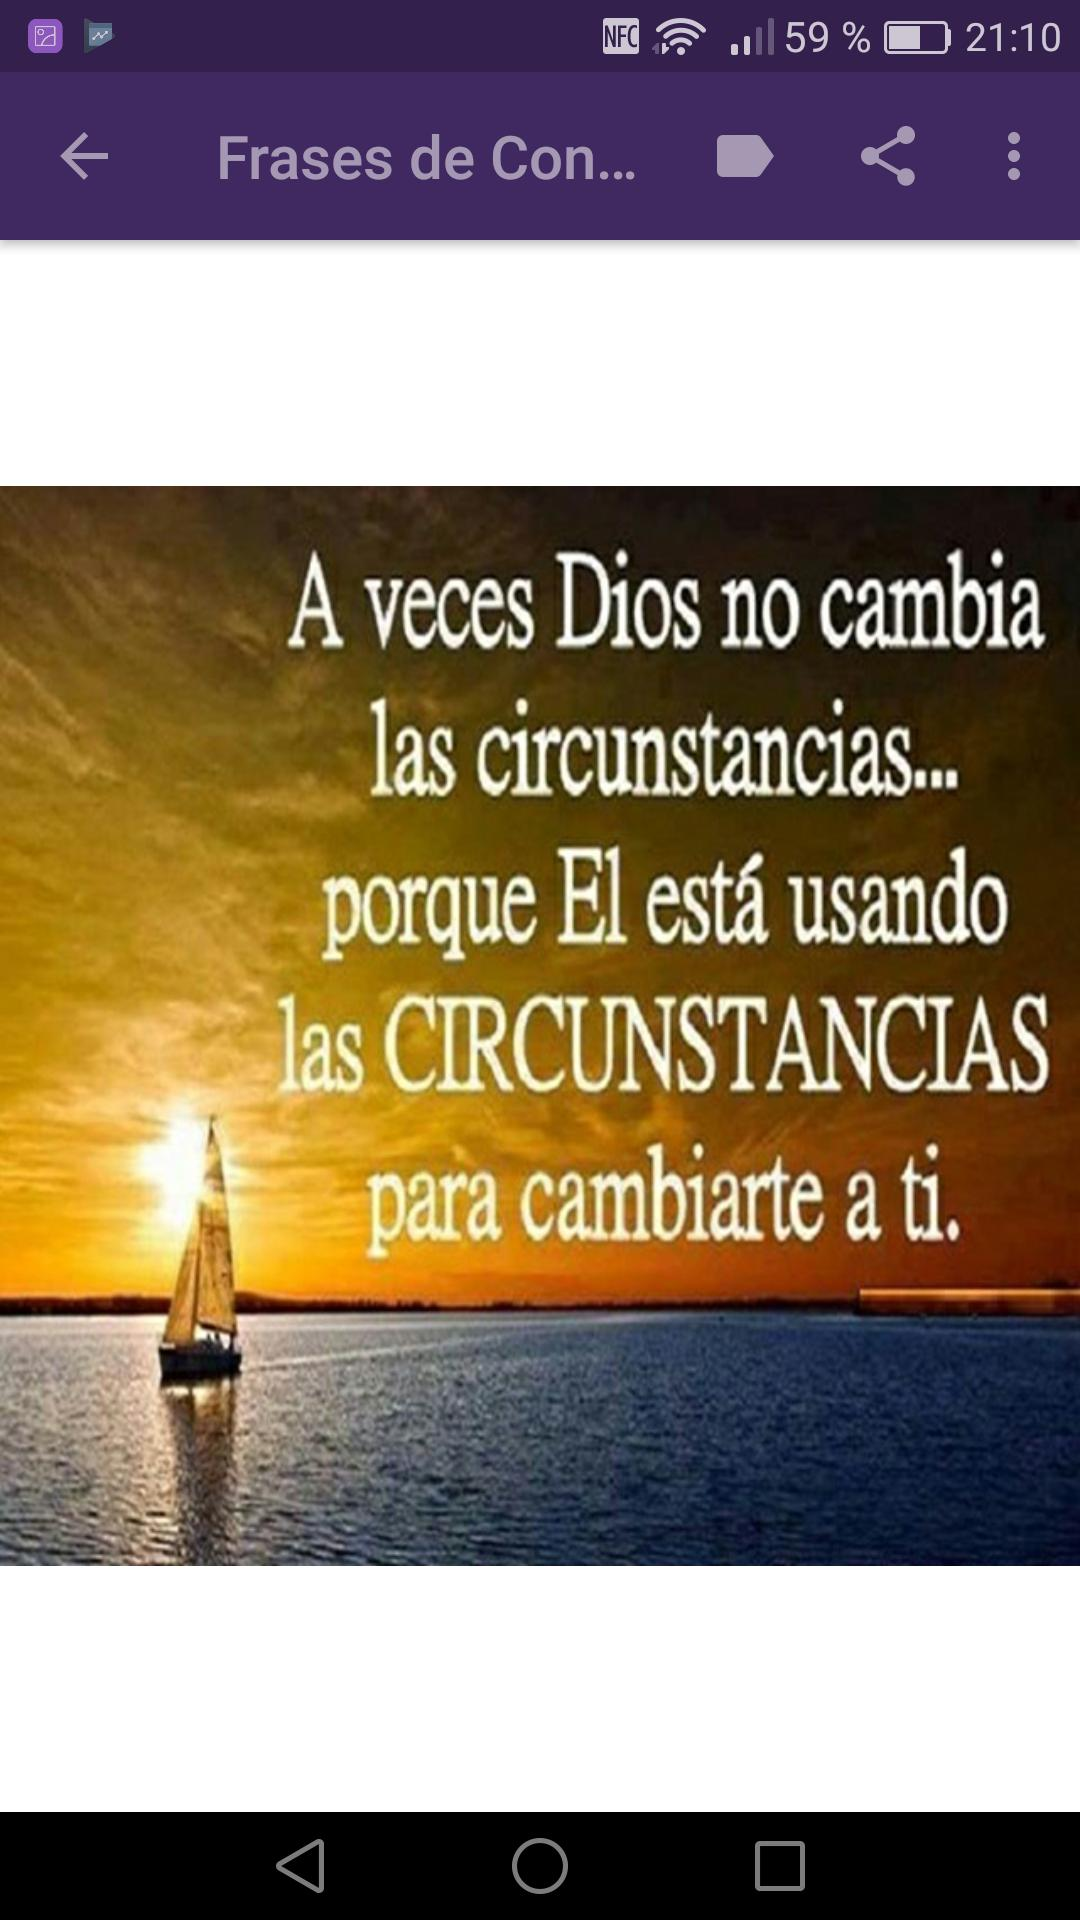 Frases De Consuelo For Android Apk Download